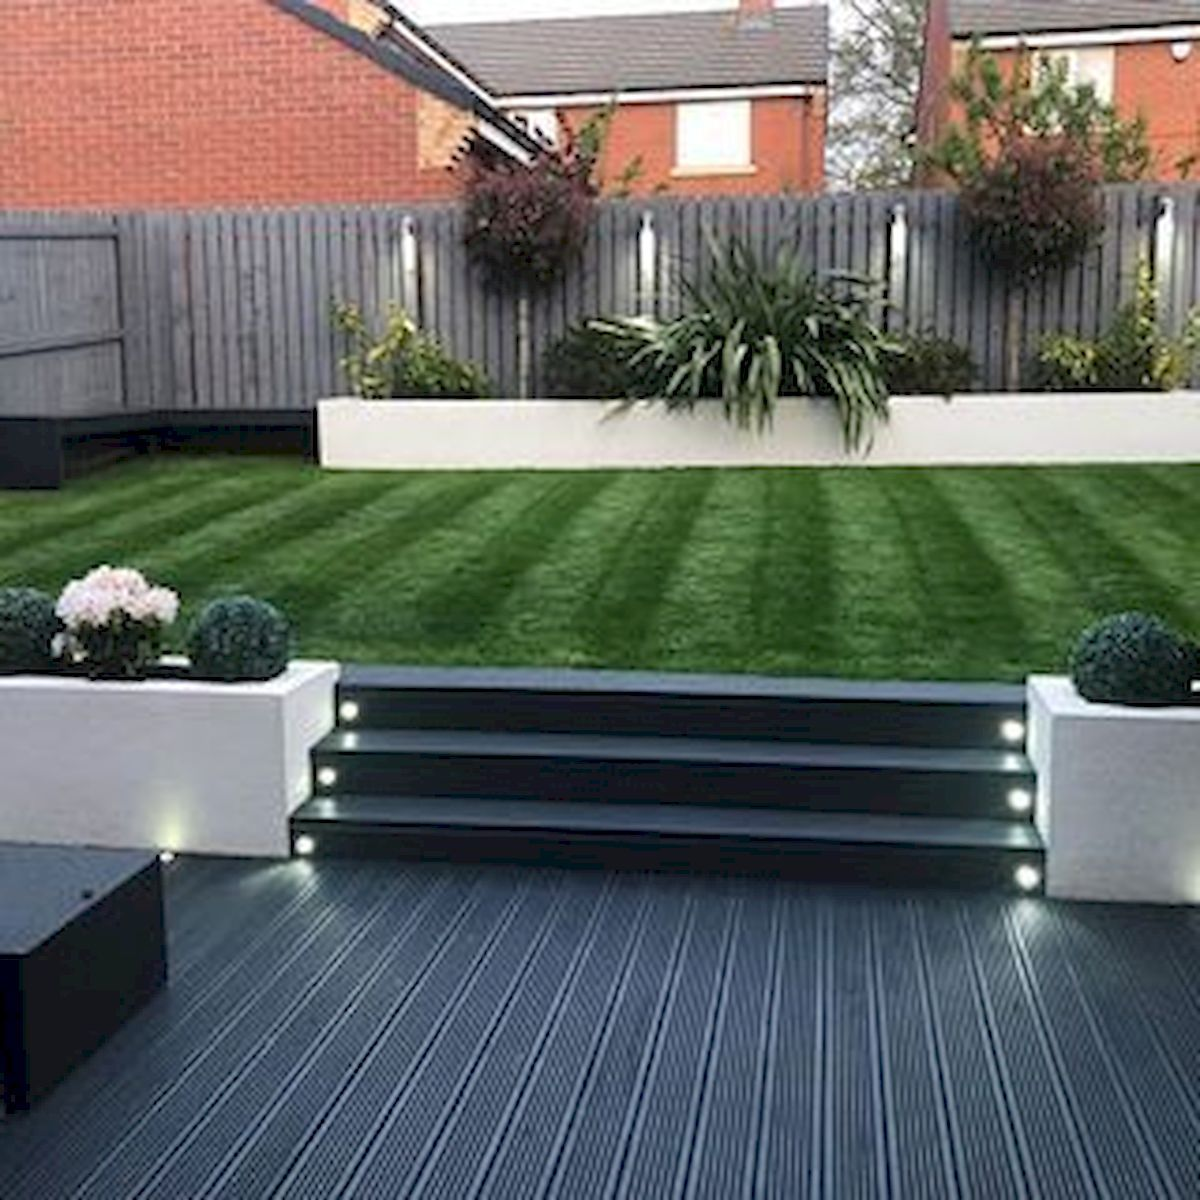 6 Fabulous Modern Garden Designs Ideas For Front Yard and